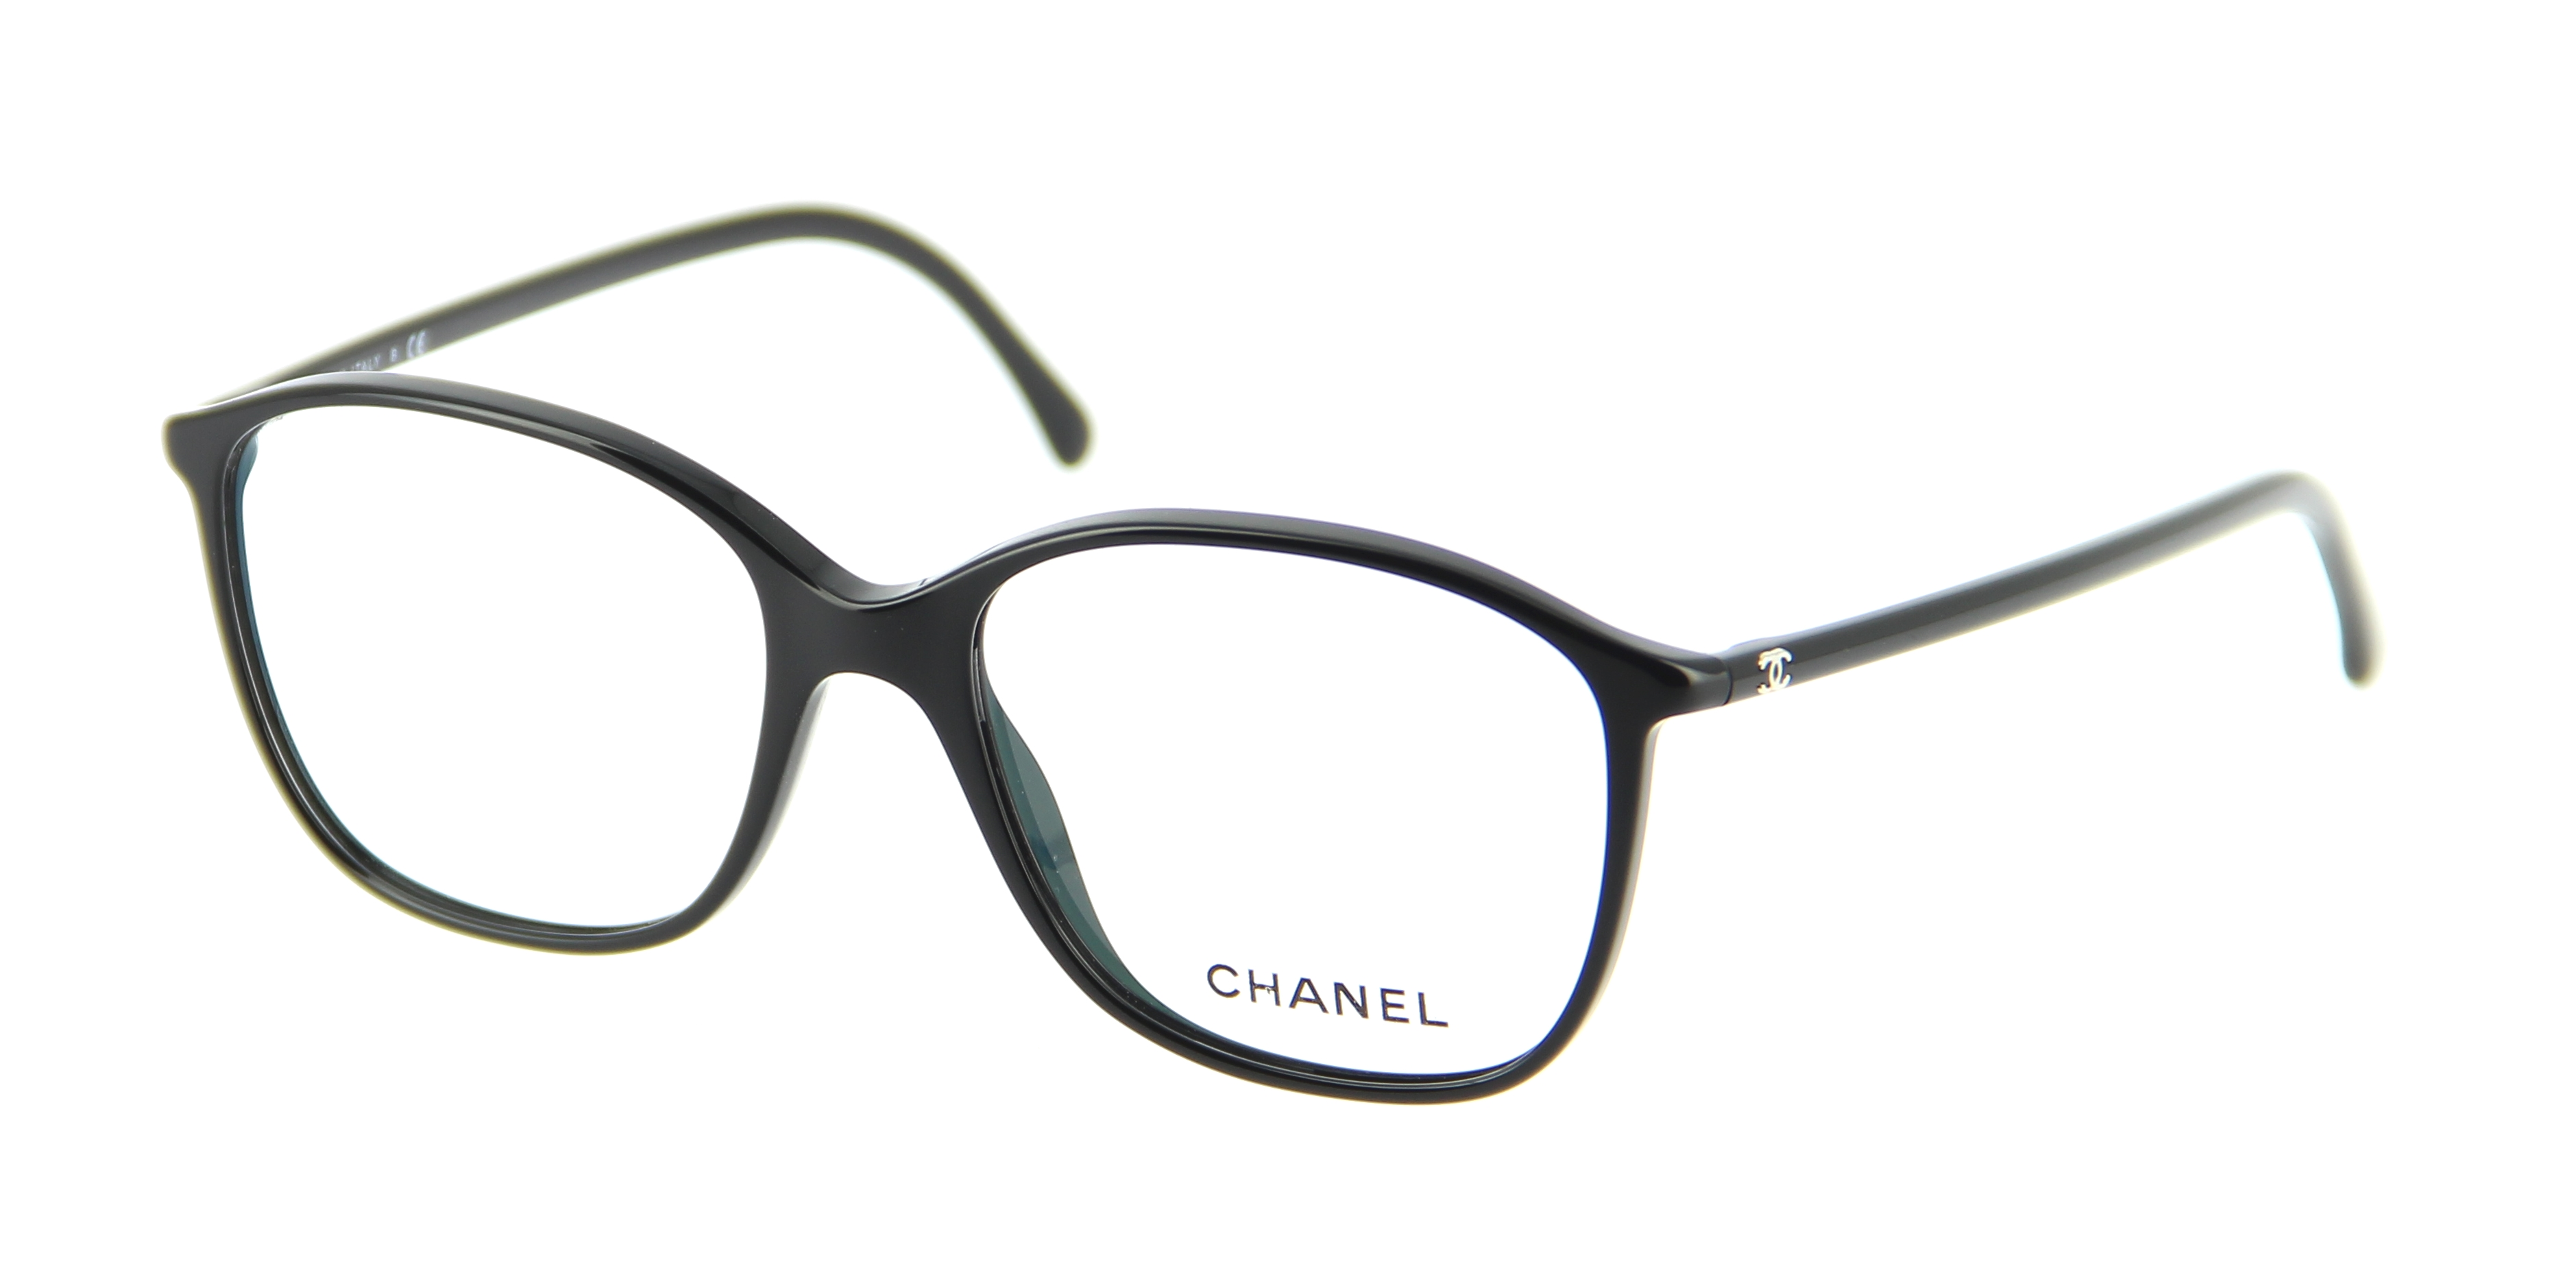 Eyeglasses CHANEL CH 3219 C501 52/16 Woman Noir square ...